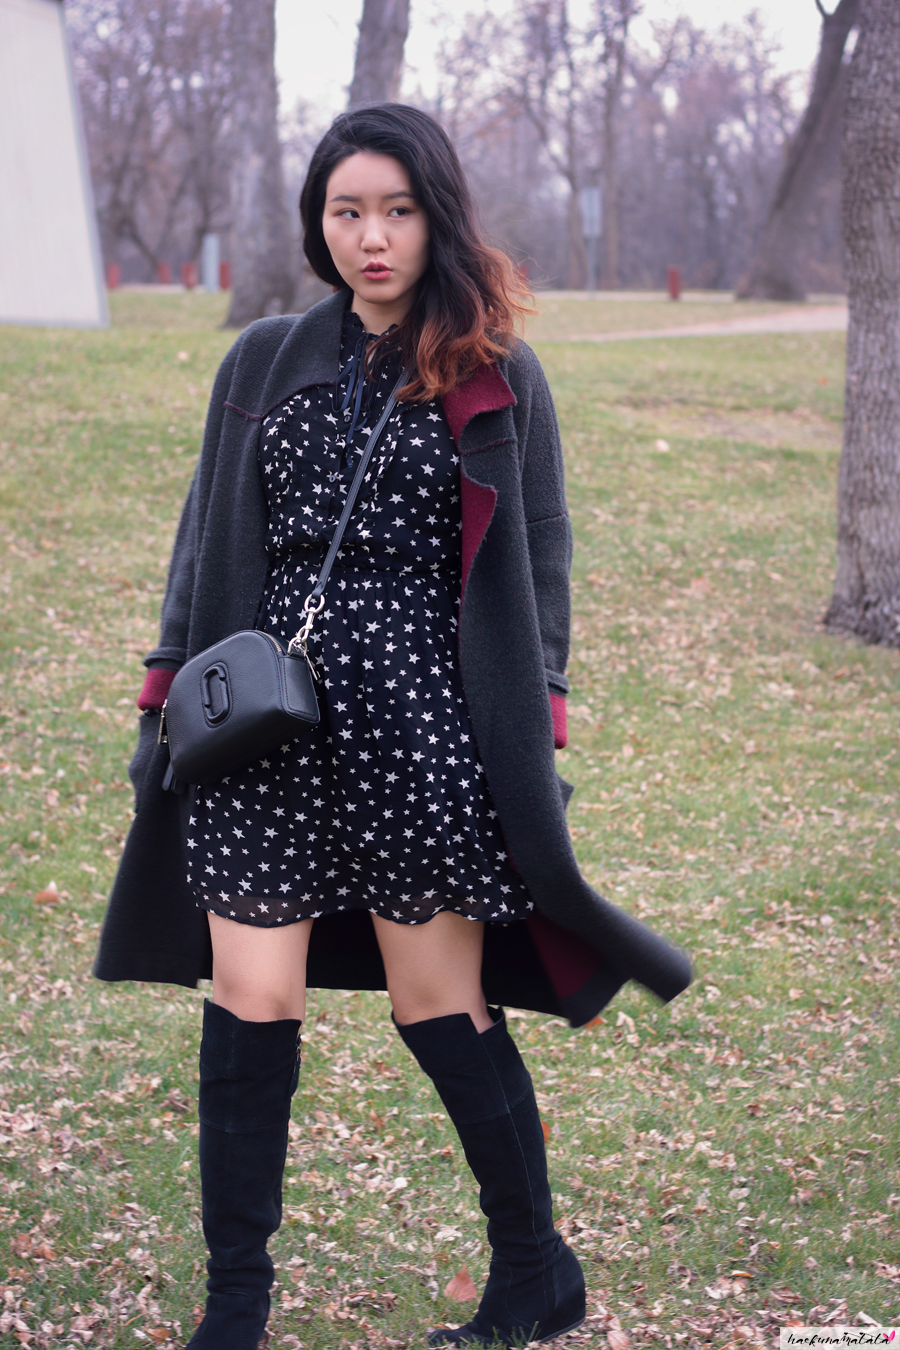 OOTD: Denim & Supply Ralph Lauren Star Print Dress, Marc Jacobs Shutter Bag, Black Suede Knee High Boots